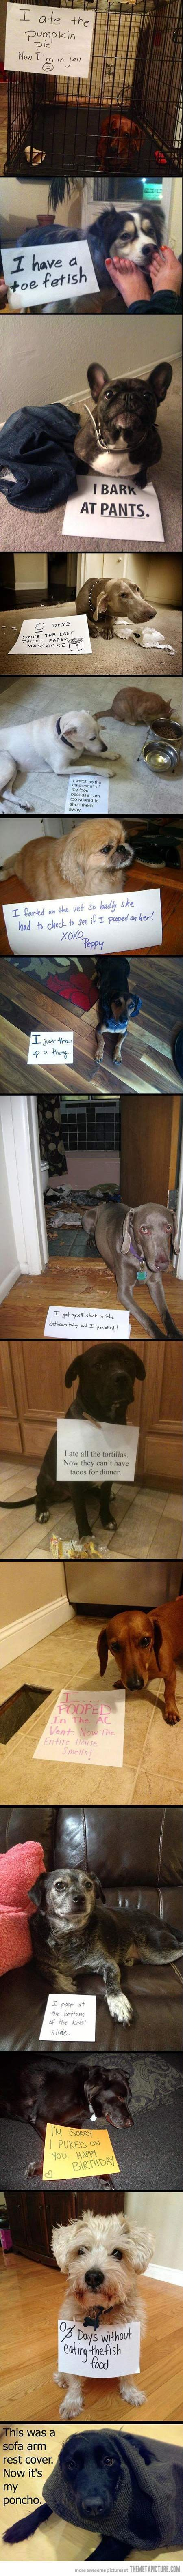 i love dog shaming. Reminds me of my puppy